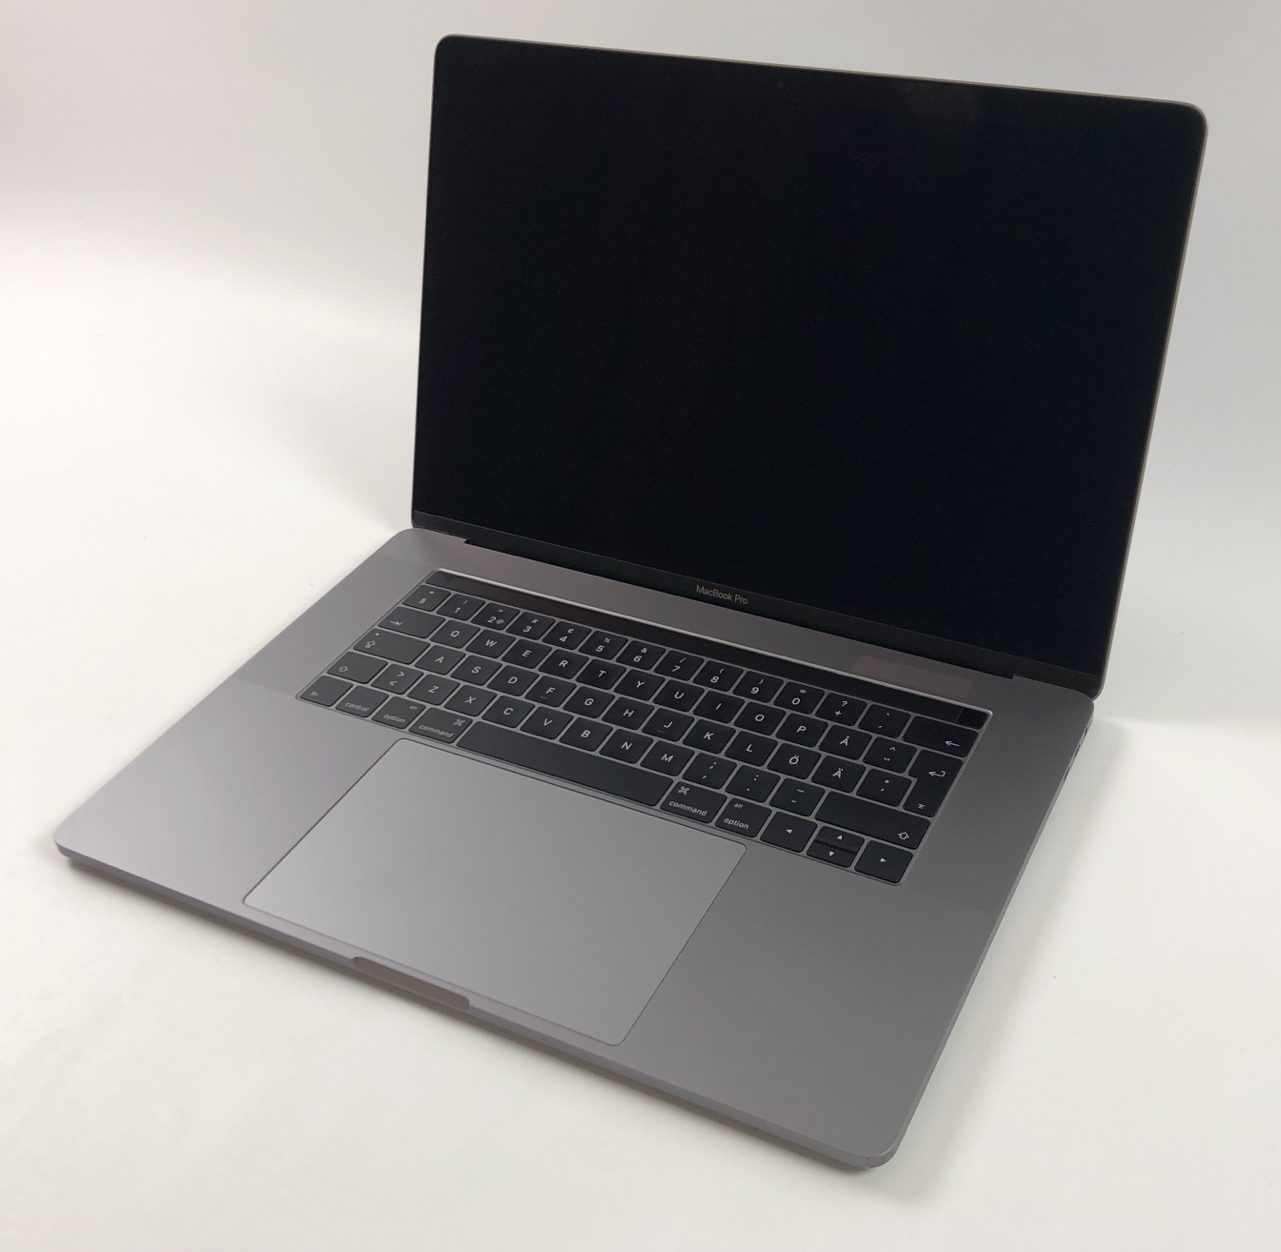 "MacBook Pro 15"" Touch Bar Late 2016 (Intel Quad-Core i7 2.7 GHz 16 GB RAM 512 GB SSD), Space Gray, Intel Quad-Core i7 2.7 GHz, 16 GB RAM, 512 GB SSD, immagine 1"